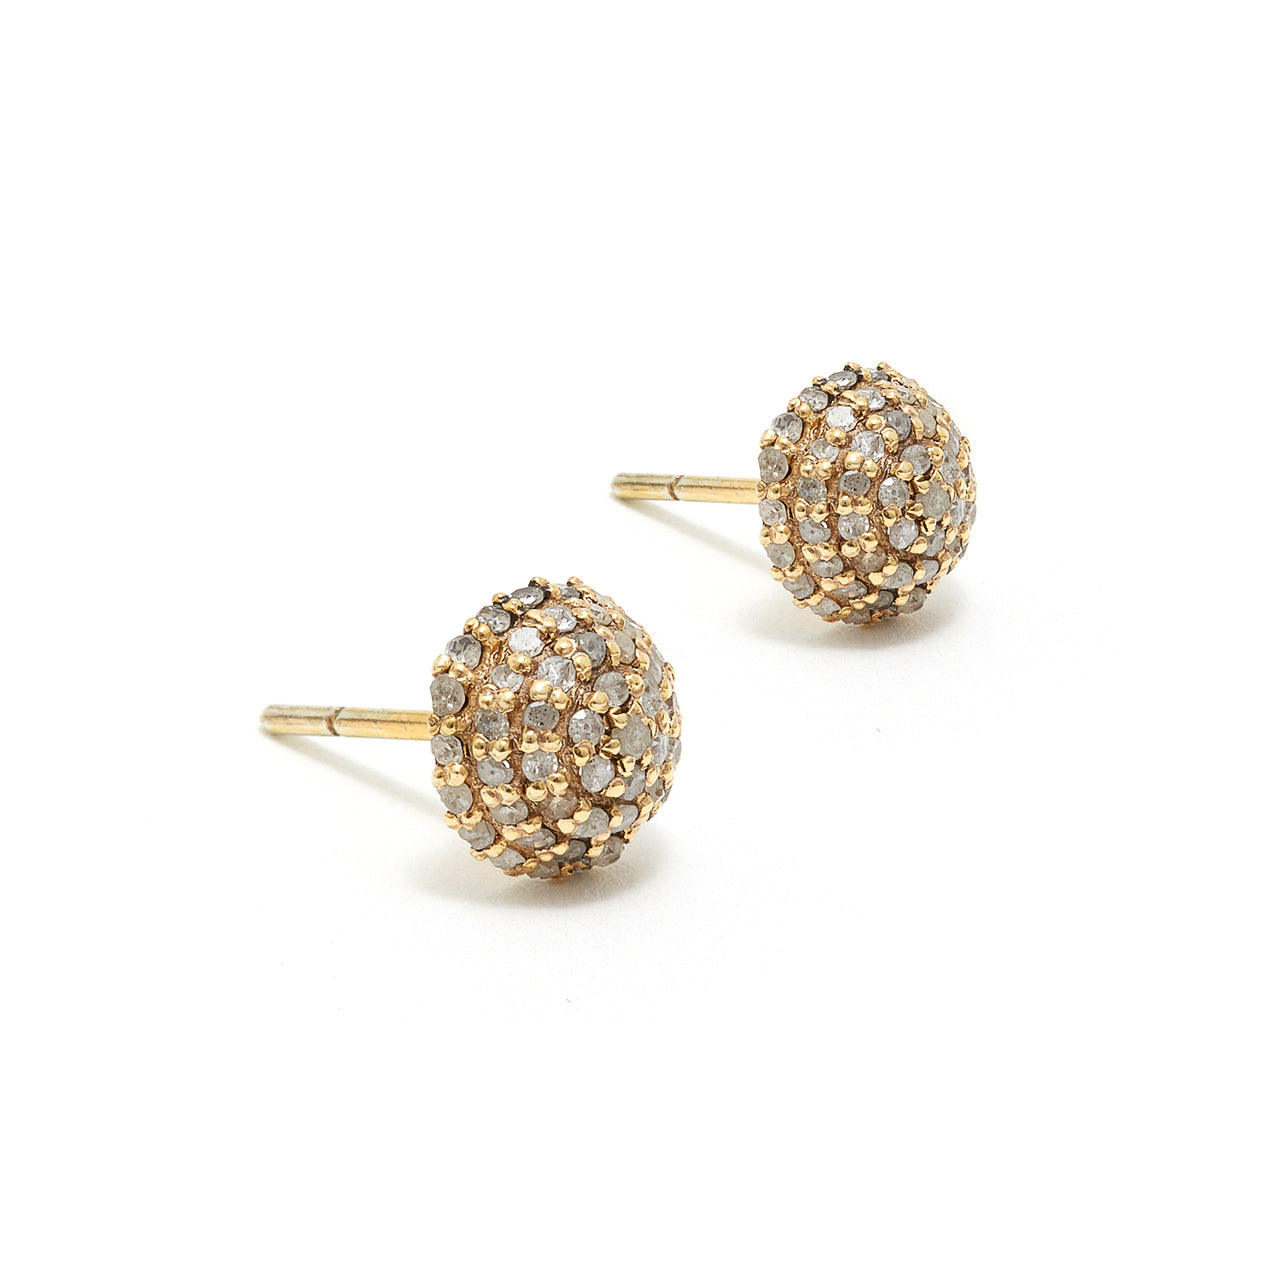 Diamond Bomba Stud Earrings-Earrings-Jaipur Atelier